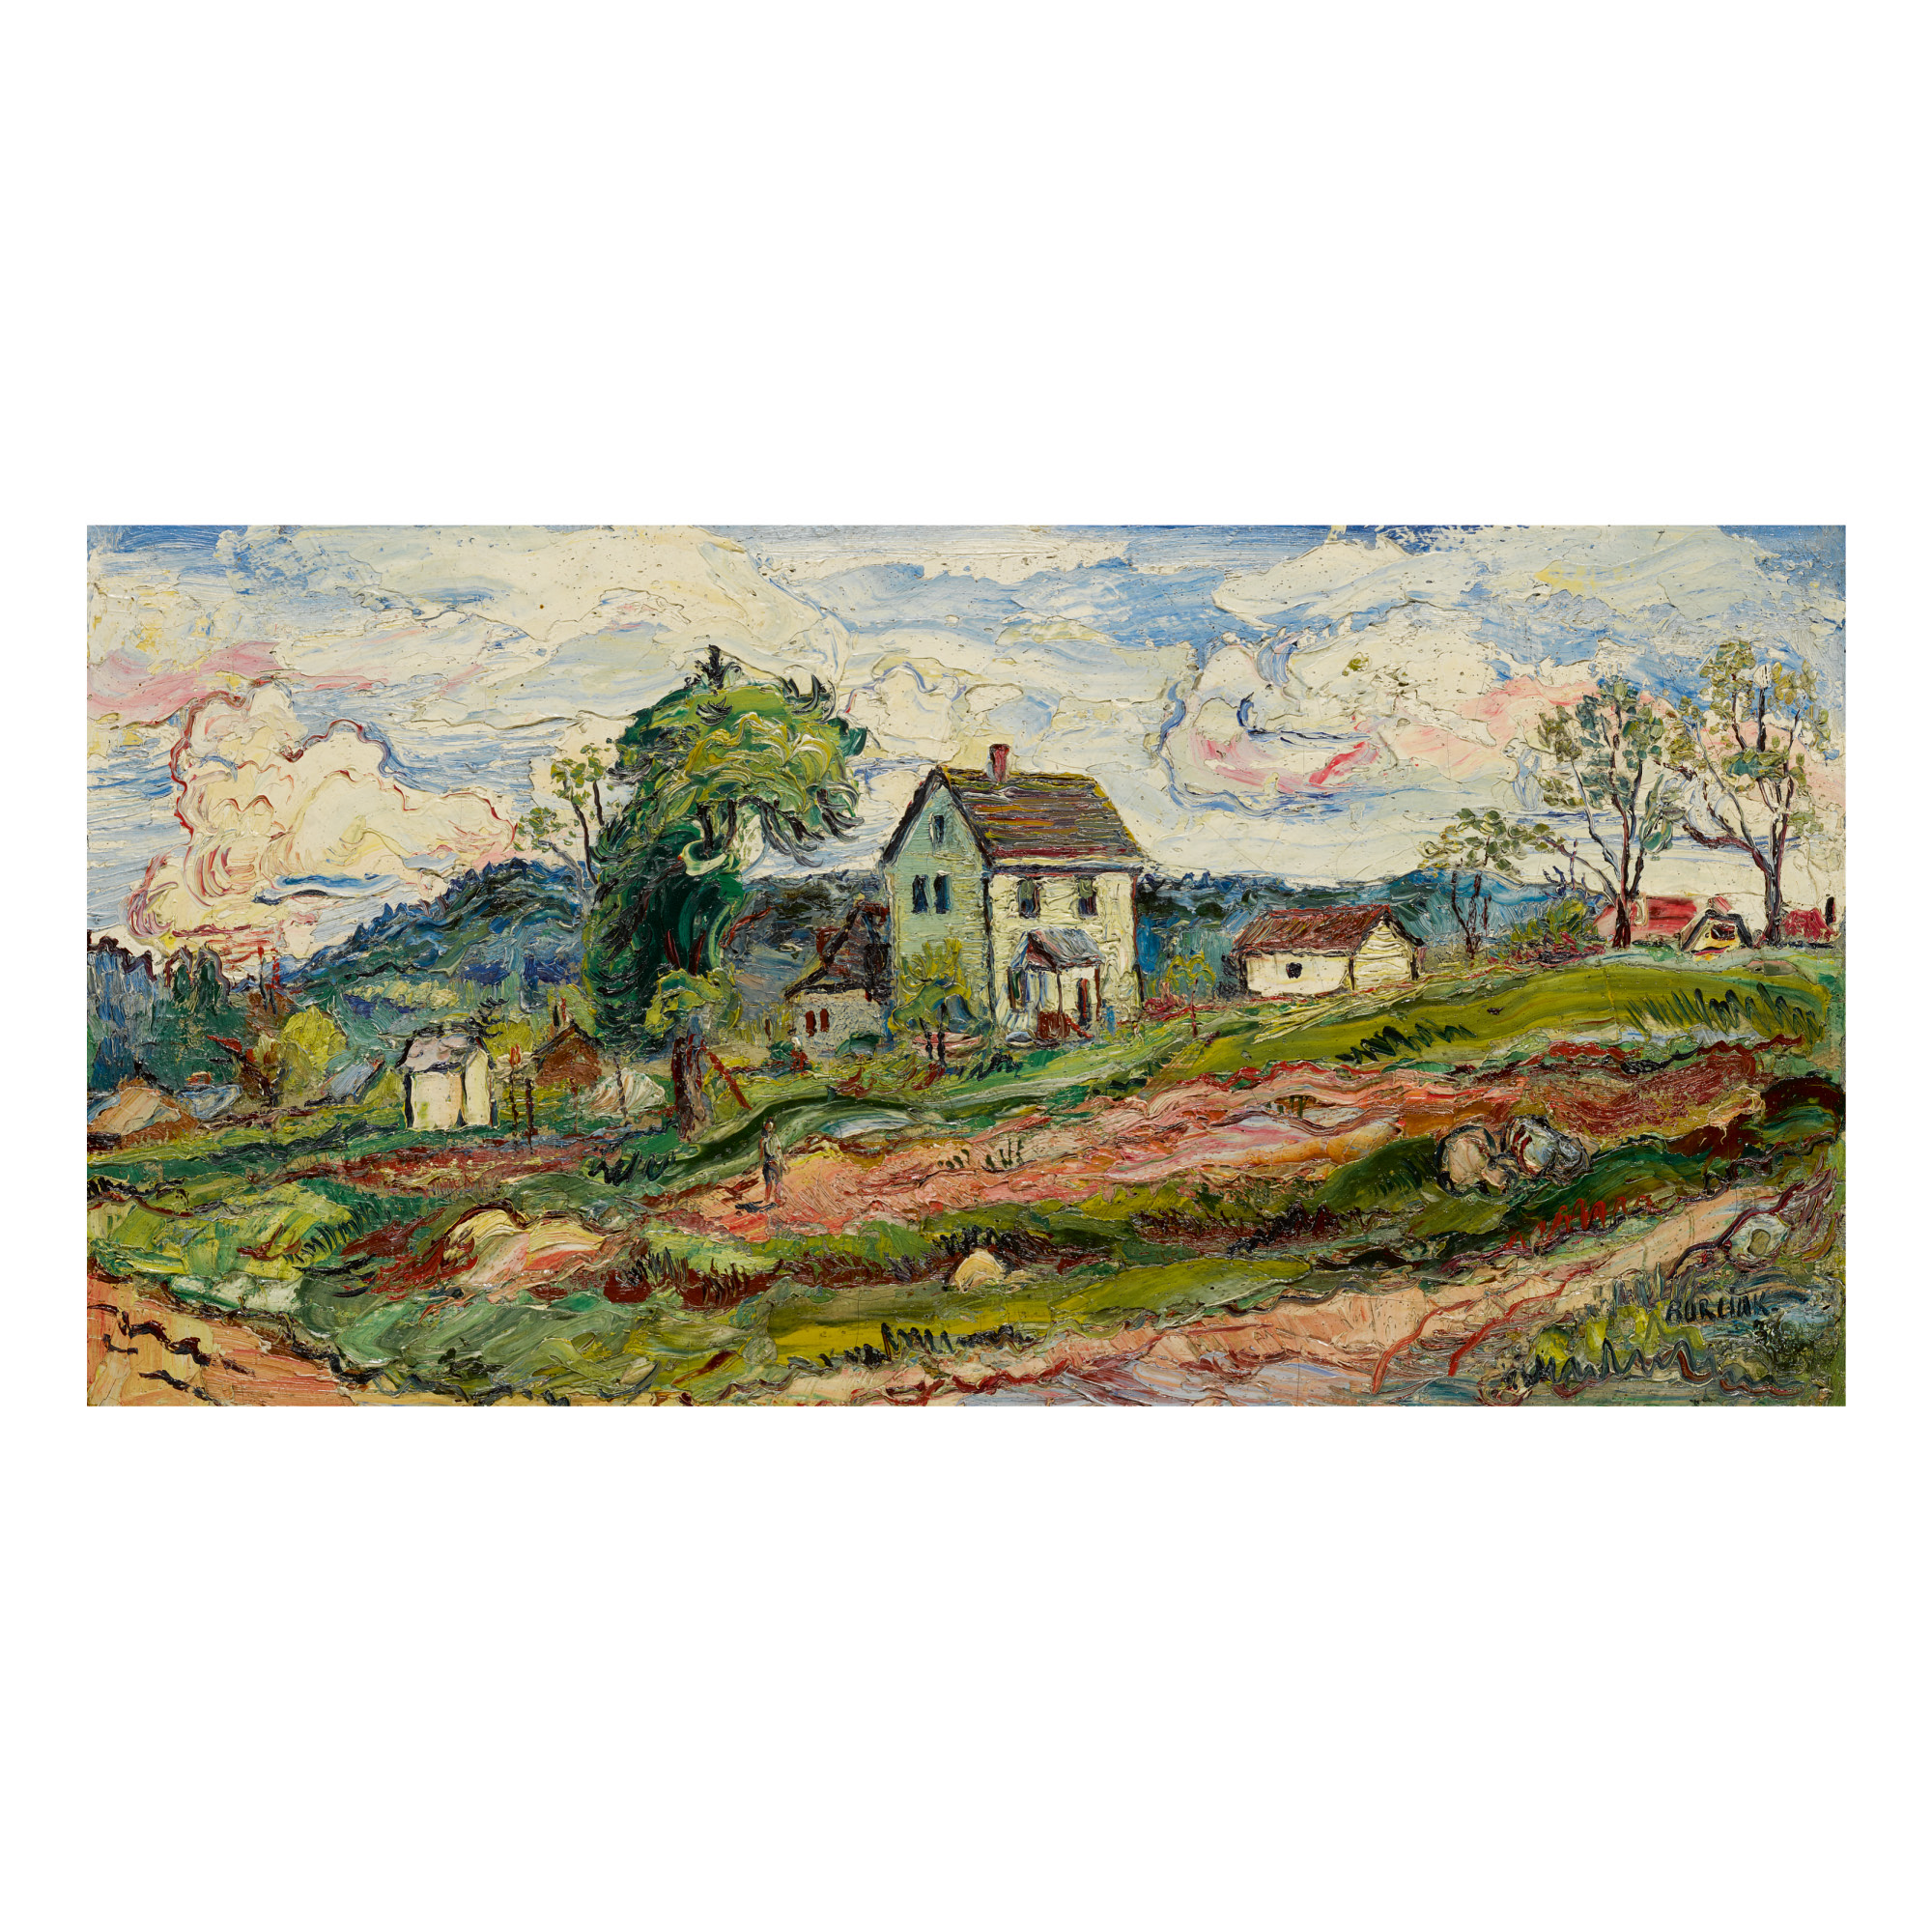 DAVID BURLIUK | LANDSCAPE WITH HOUSE